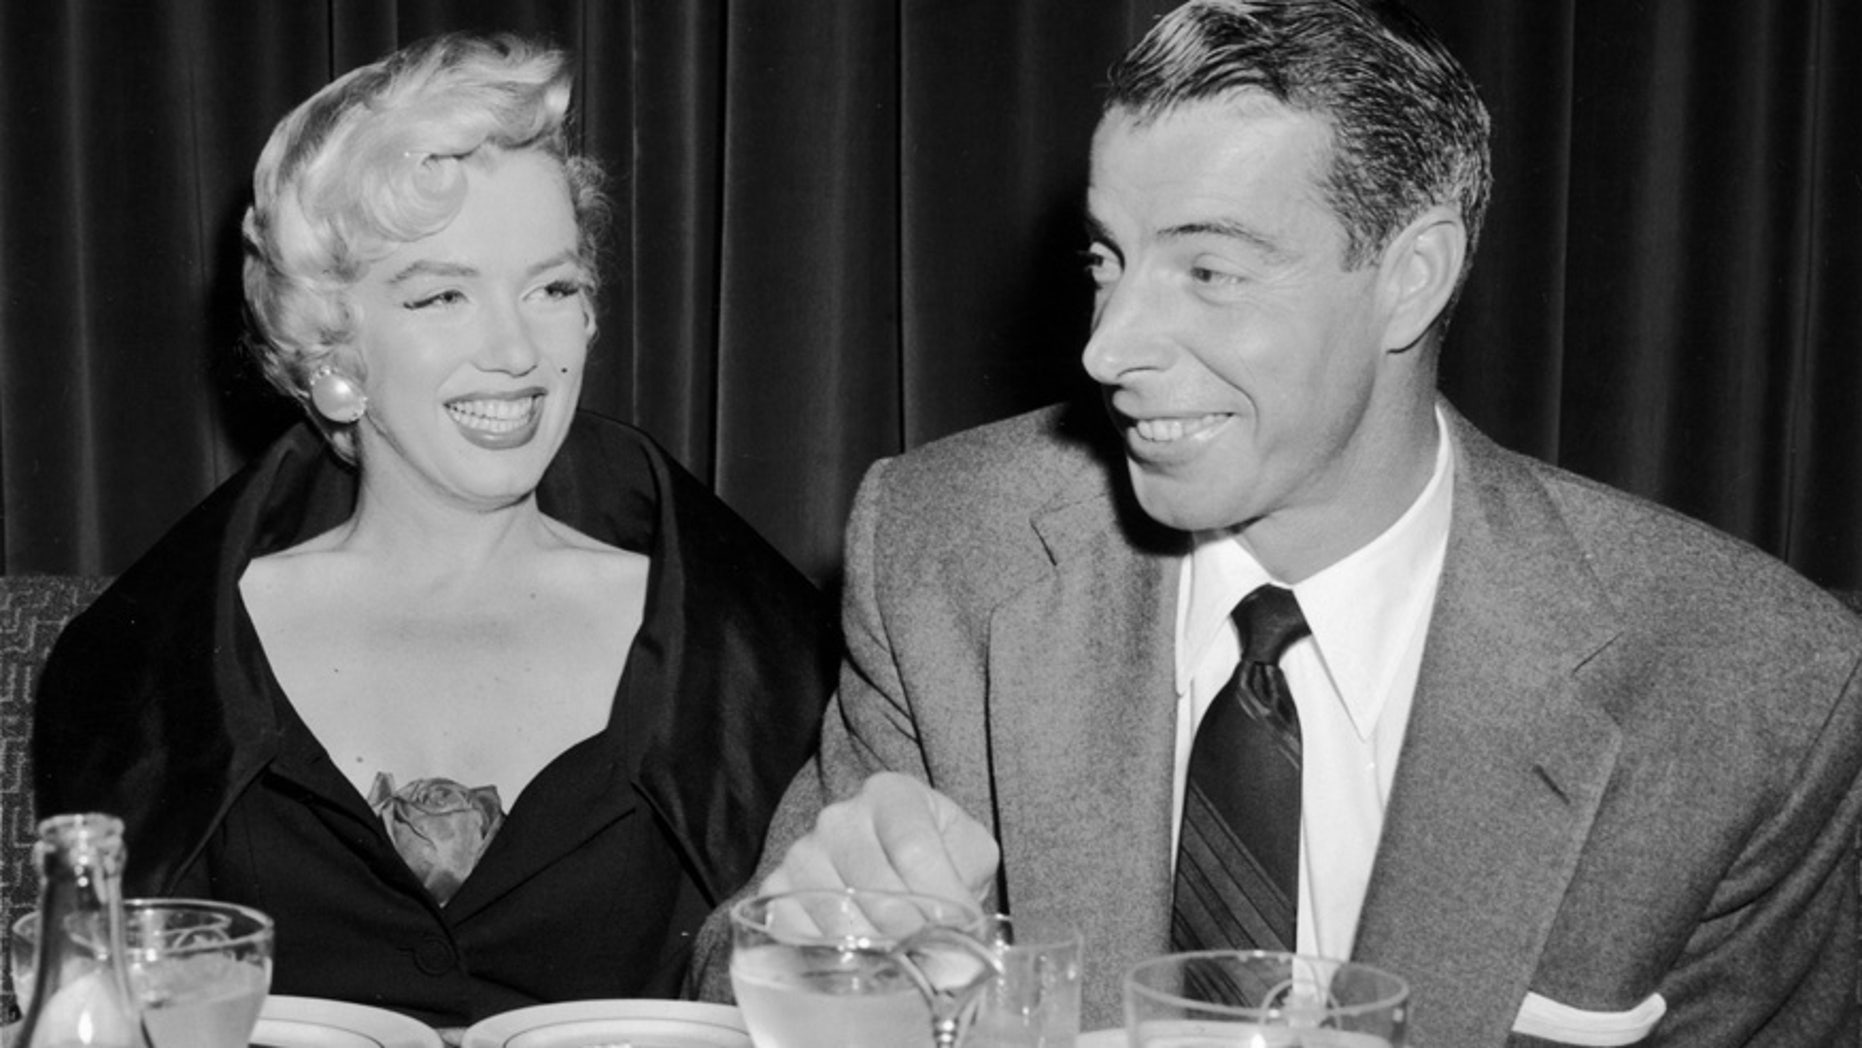 A portrait of Marilyn Monroe sitting with her husband Joe DiMaggio at El Morocco in New York City.